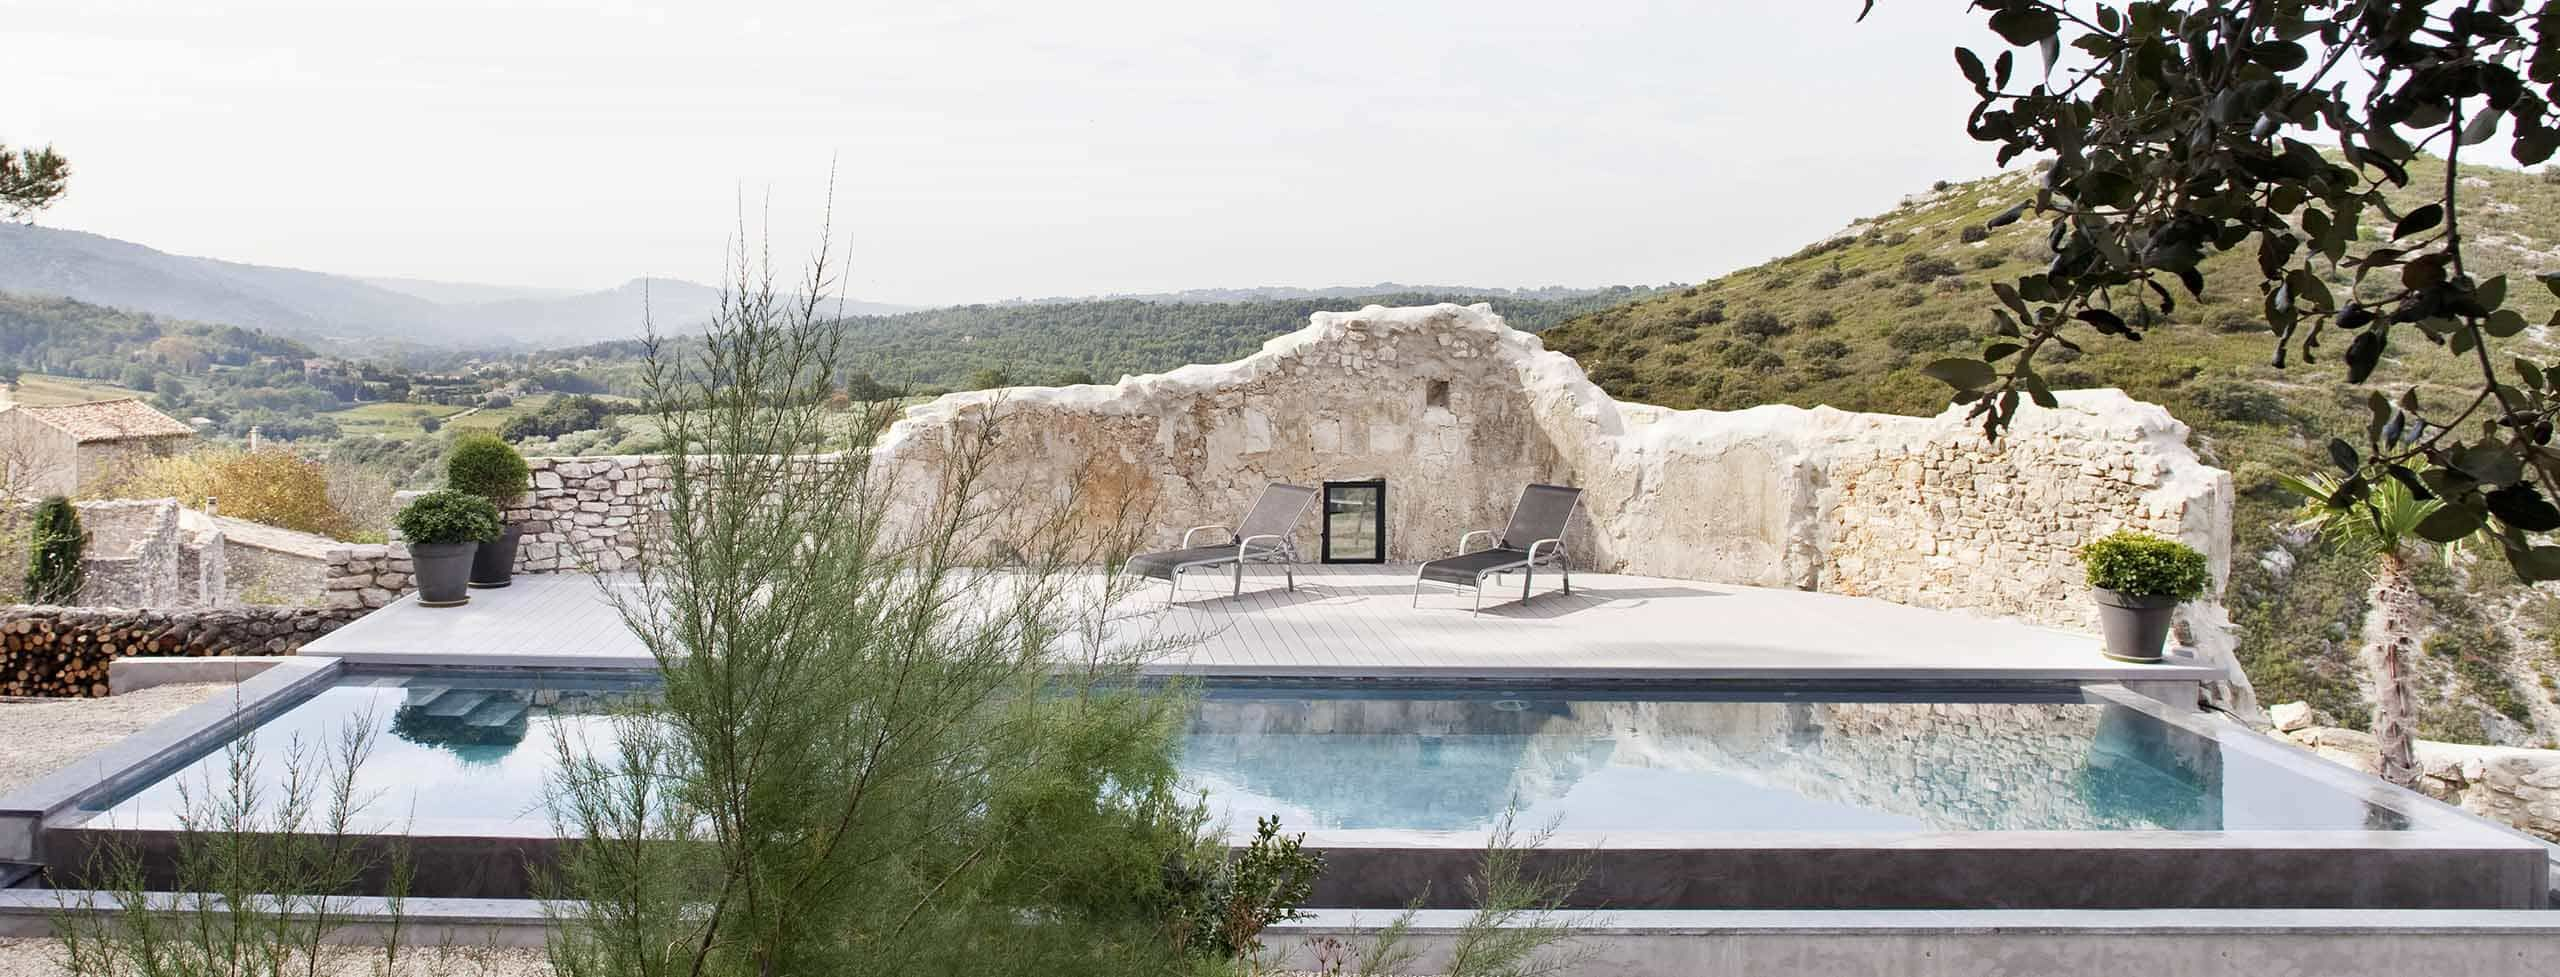 Boutique B B Provence Metafort Chambre D Hotes Luberon Chambres D Hote Design Provence Maine House Cosy Apartment Infinity Pool